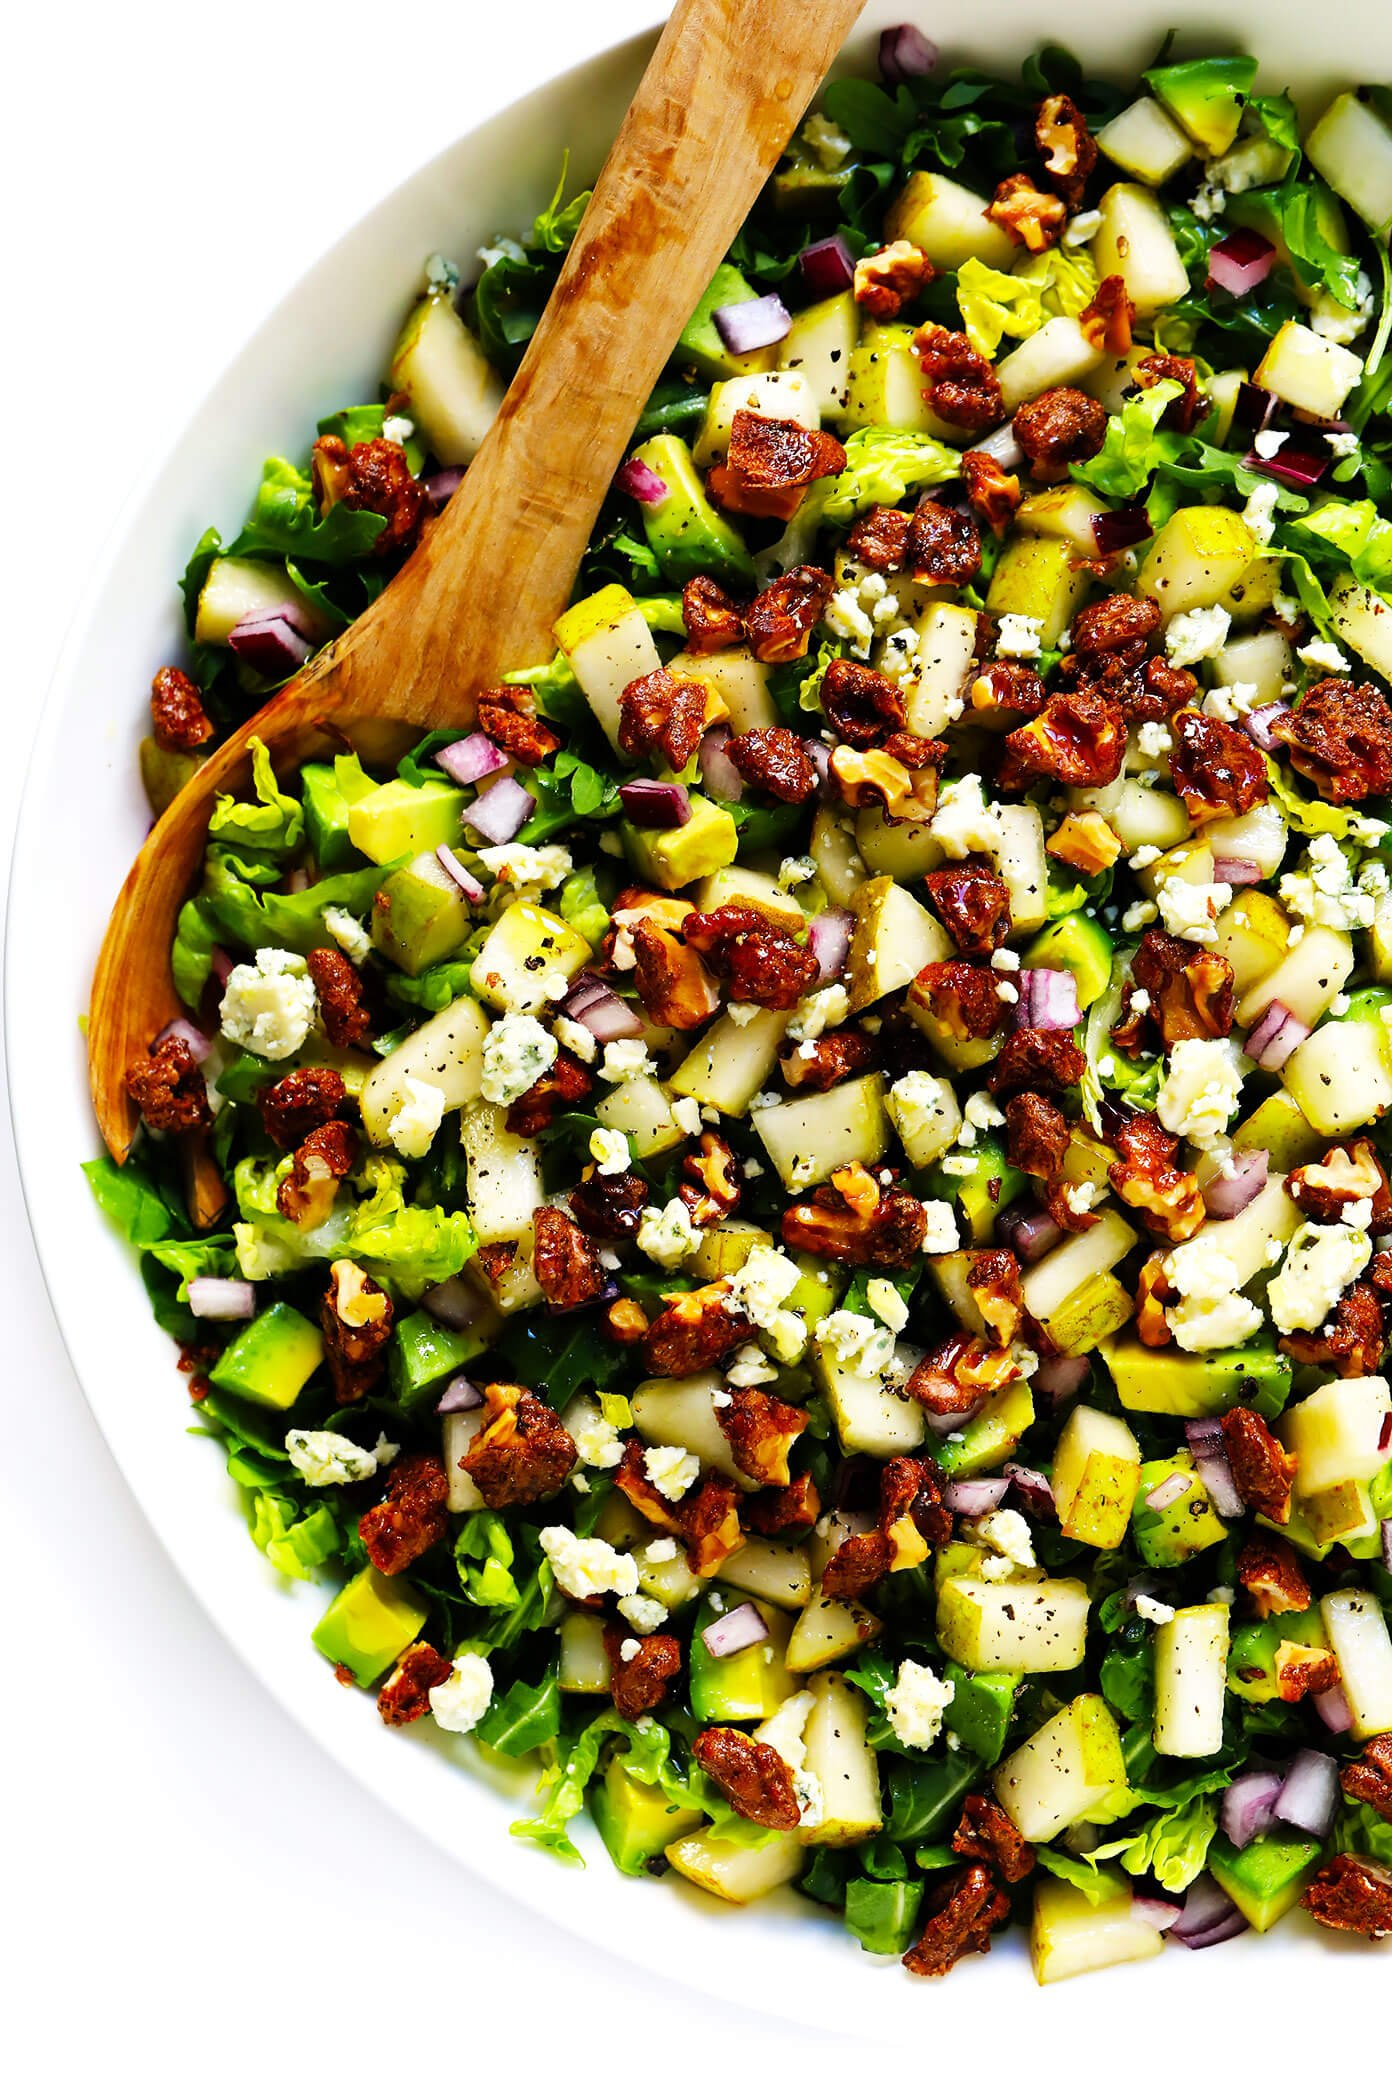 Pear Salad with Gorgonzola and Candied Walnuts